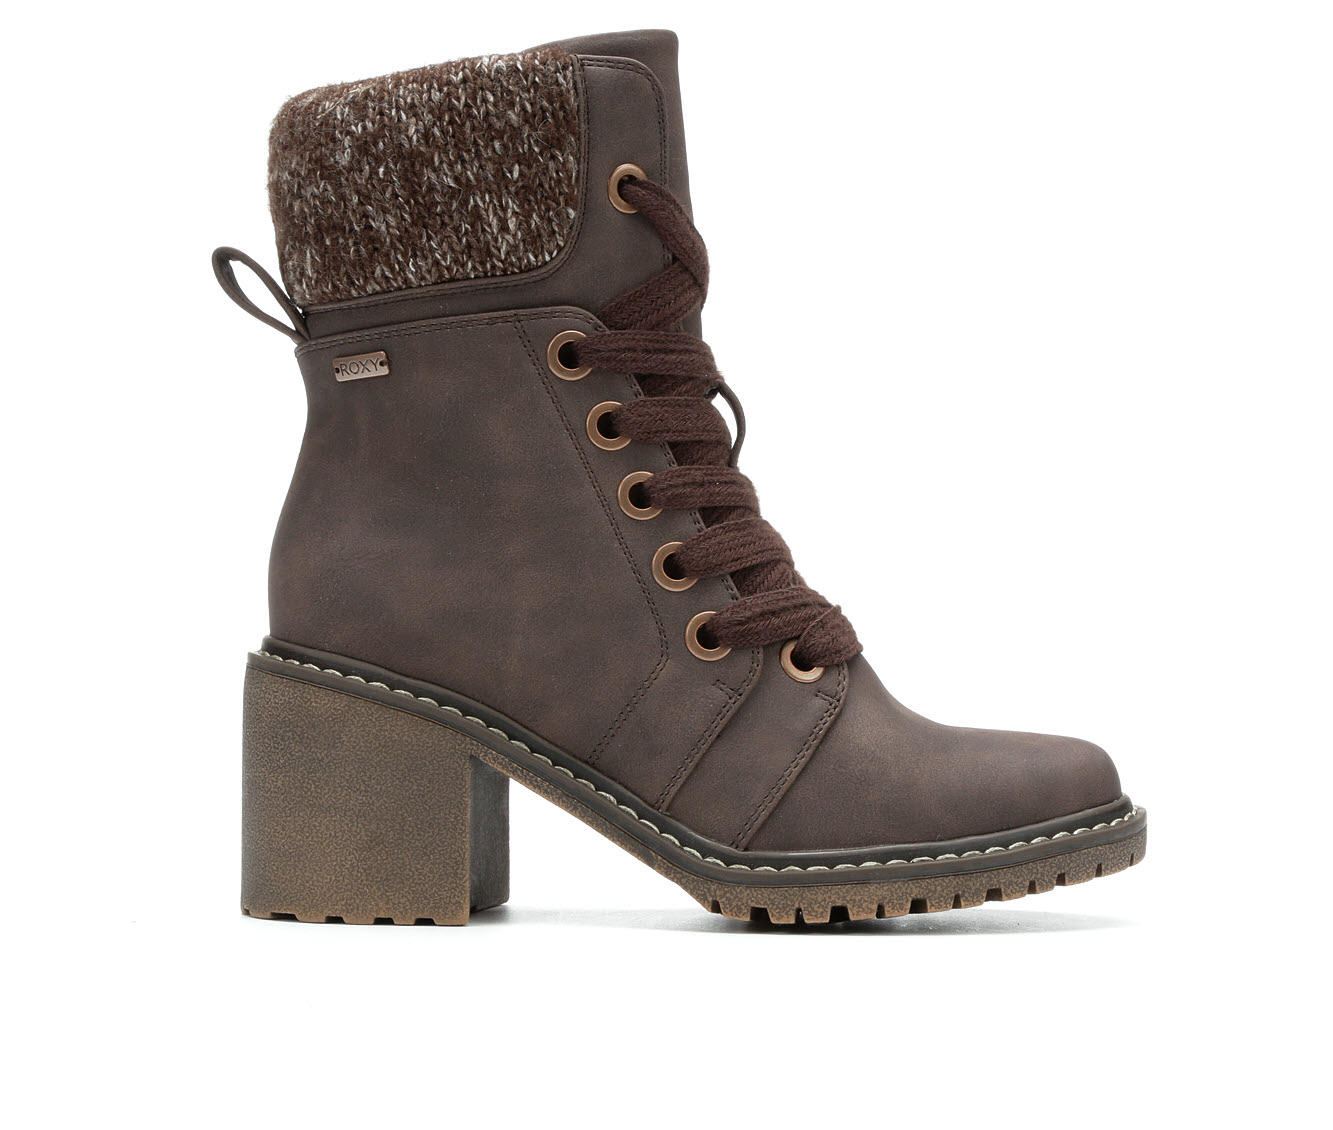 Roxy Whitley Women's Boot (Brown Faux Leather)